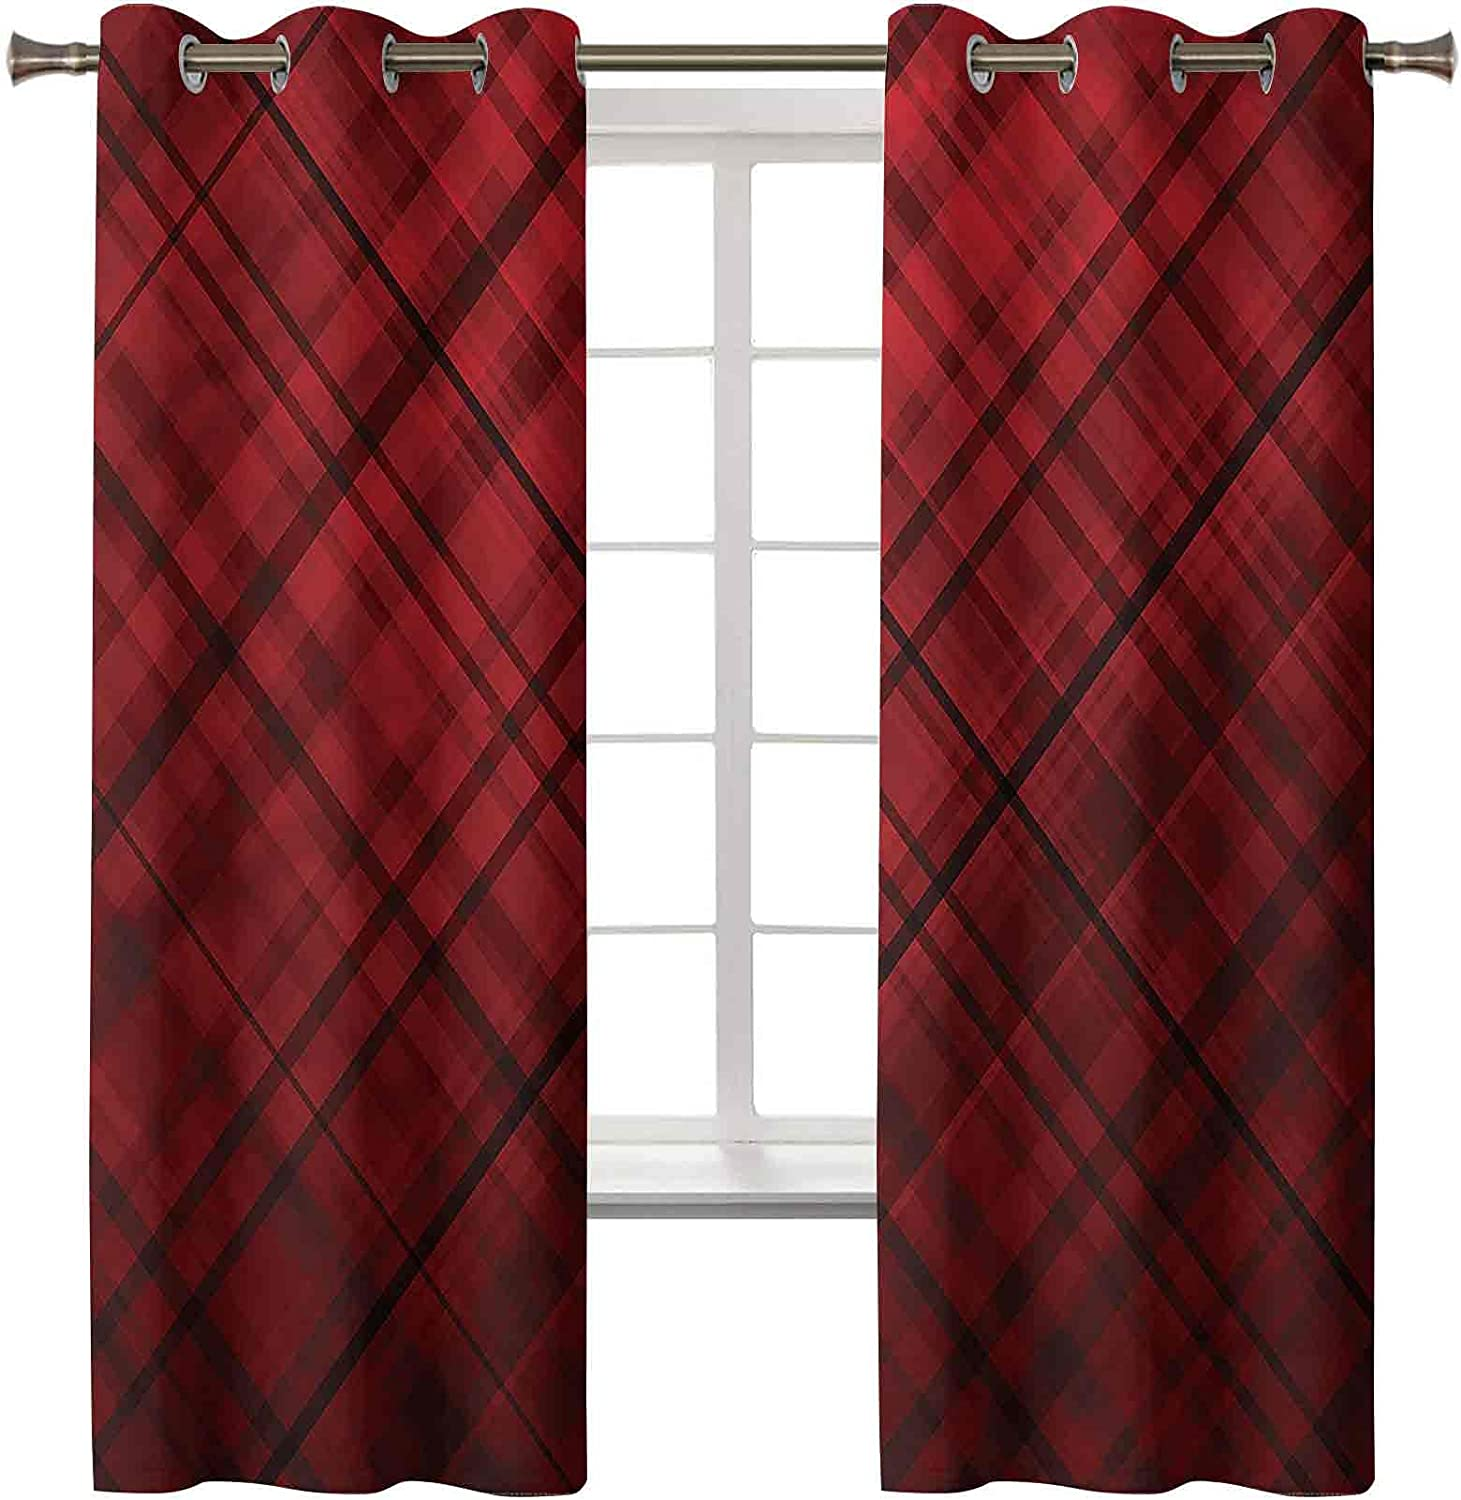 3D Printed Blackout Curtains Grommet Ranking TOP20 Insulated Red Thermal and Ranking TOP17